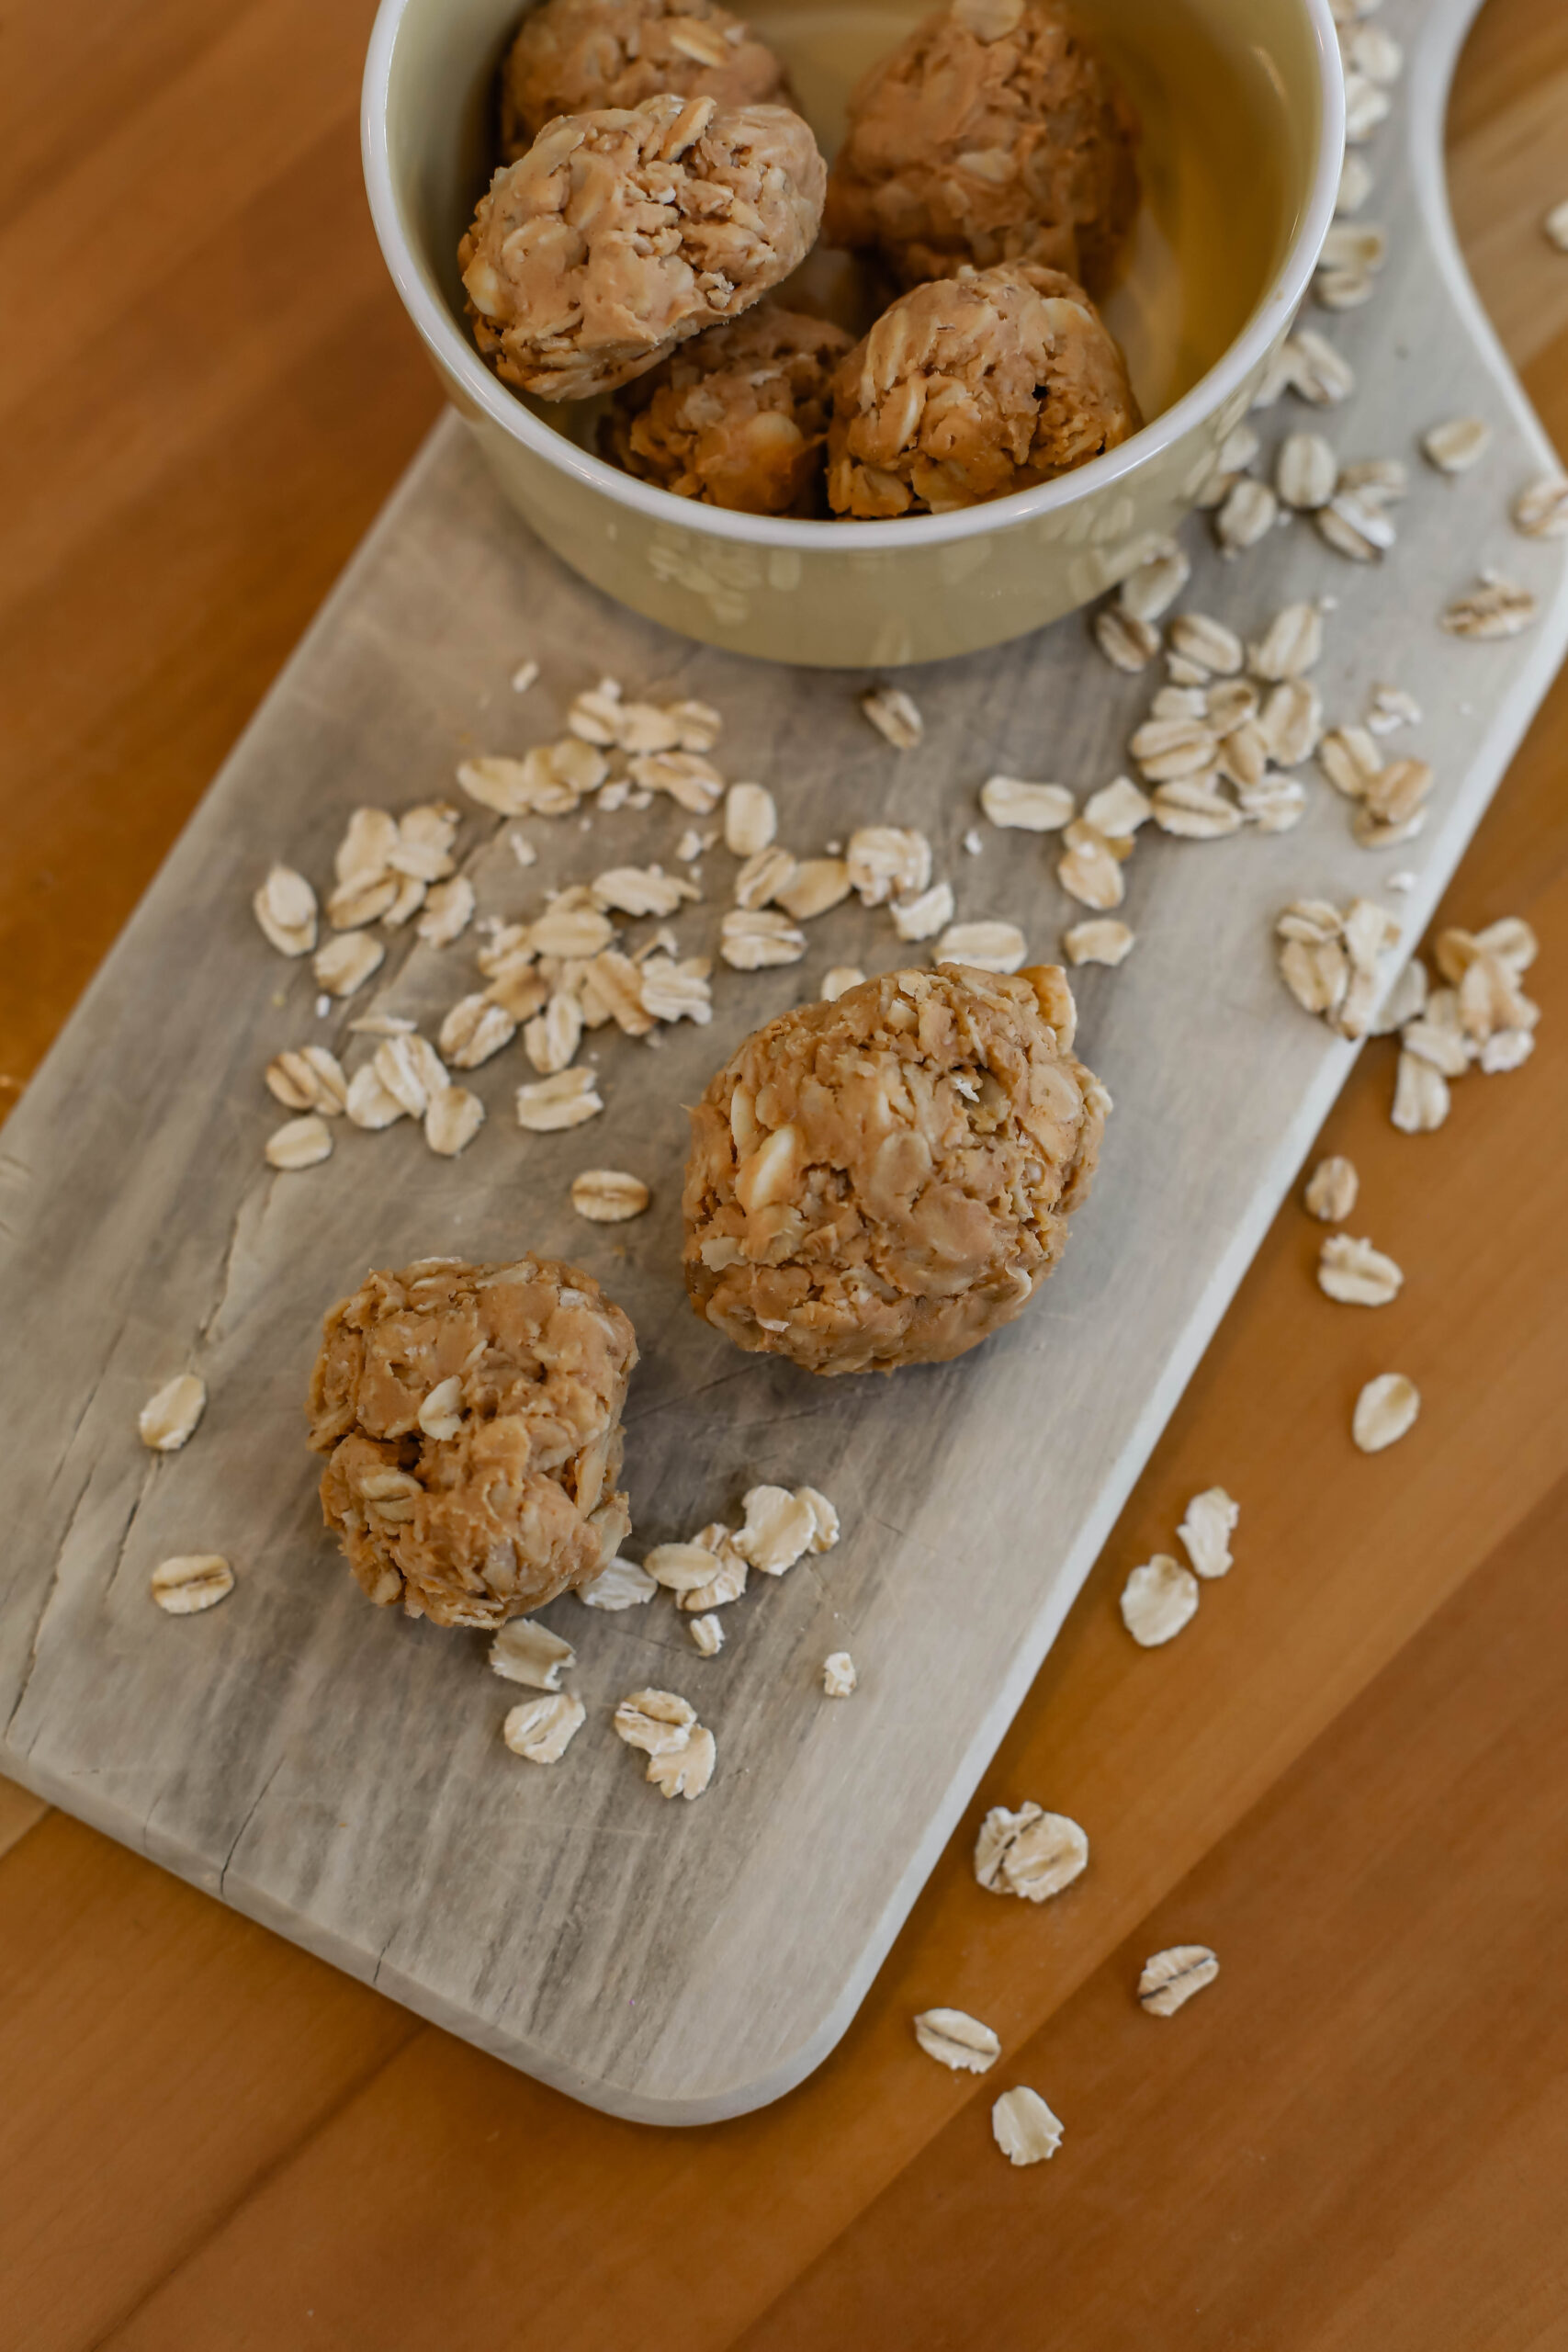 Looking for an easy recipe to make with your kids? Peanut Butter Protein Balls are delish, and a ton of fun to make!